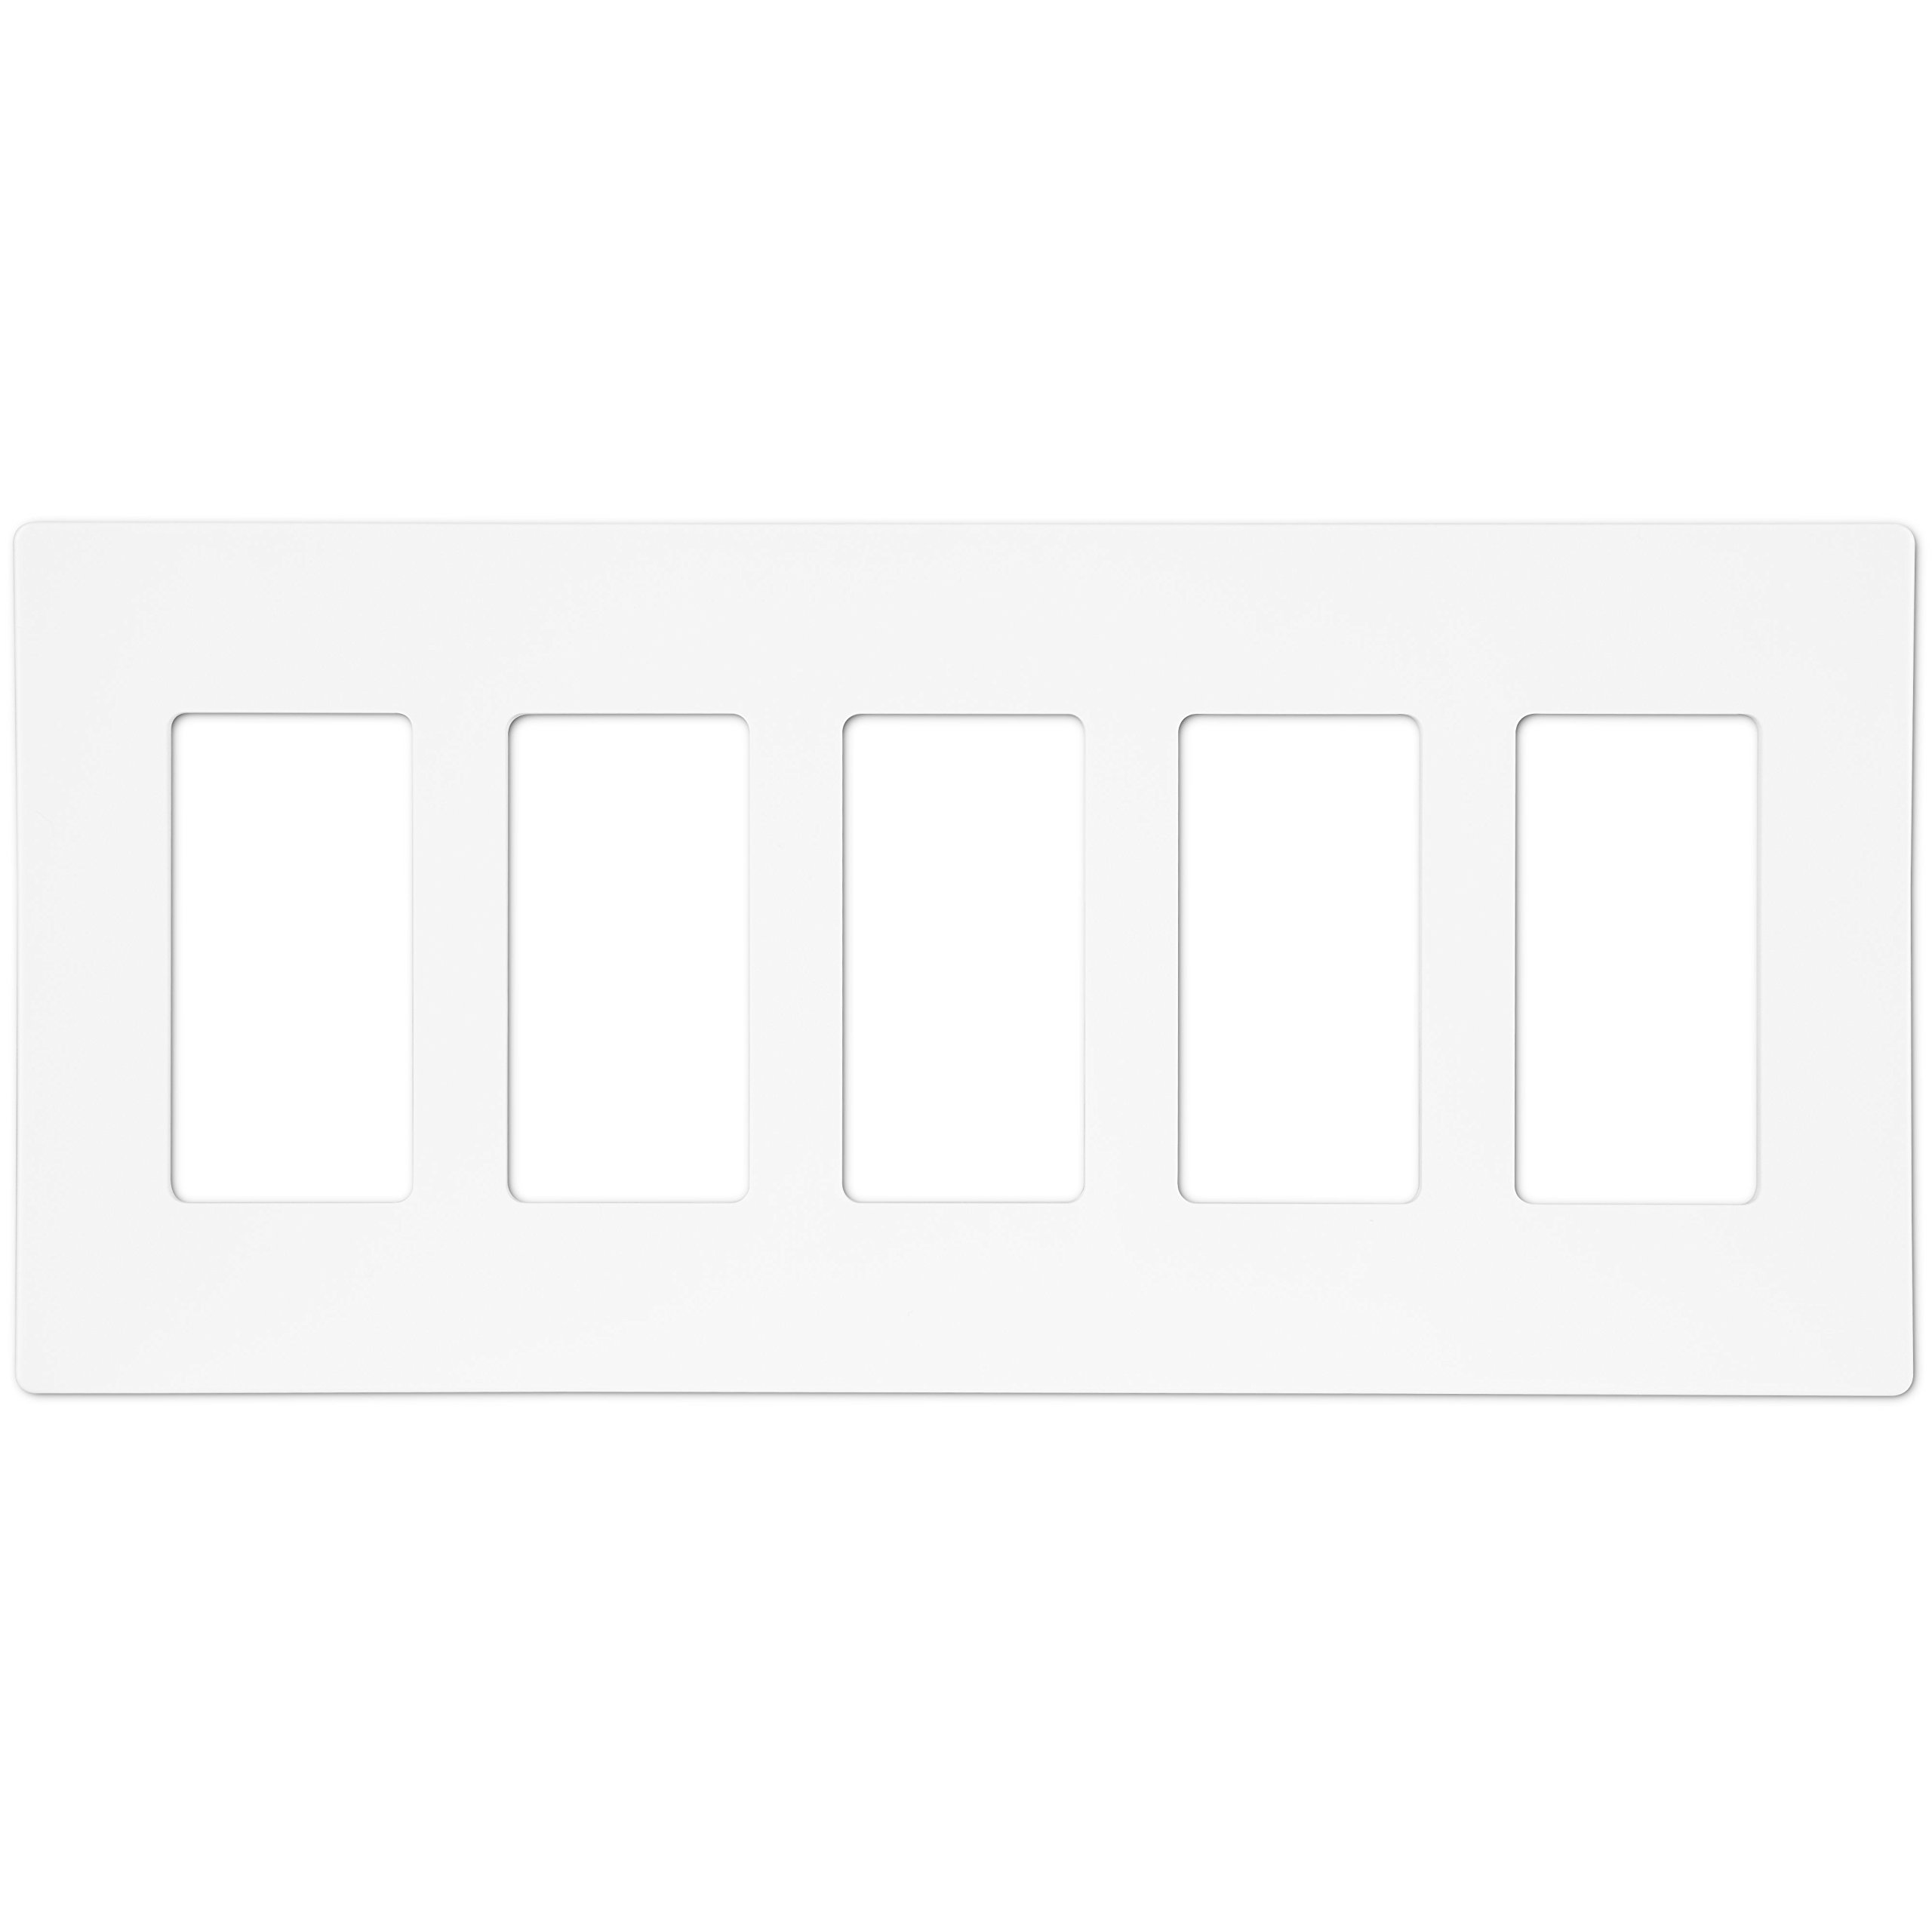 Enerlites SI8835-W Screwless Decorator Wall Plate Child Safe Cover, Standard Size 5-Gang, Polycarbonate Thermoplastic, White